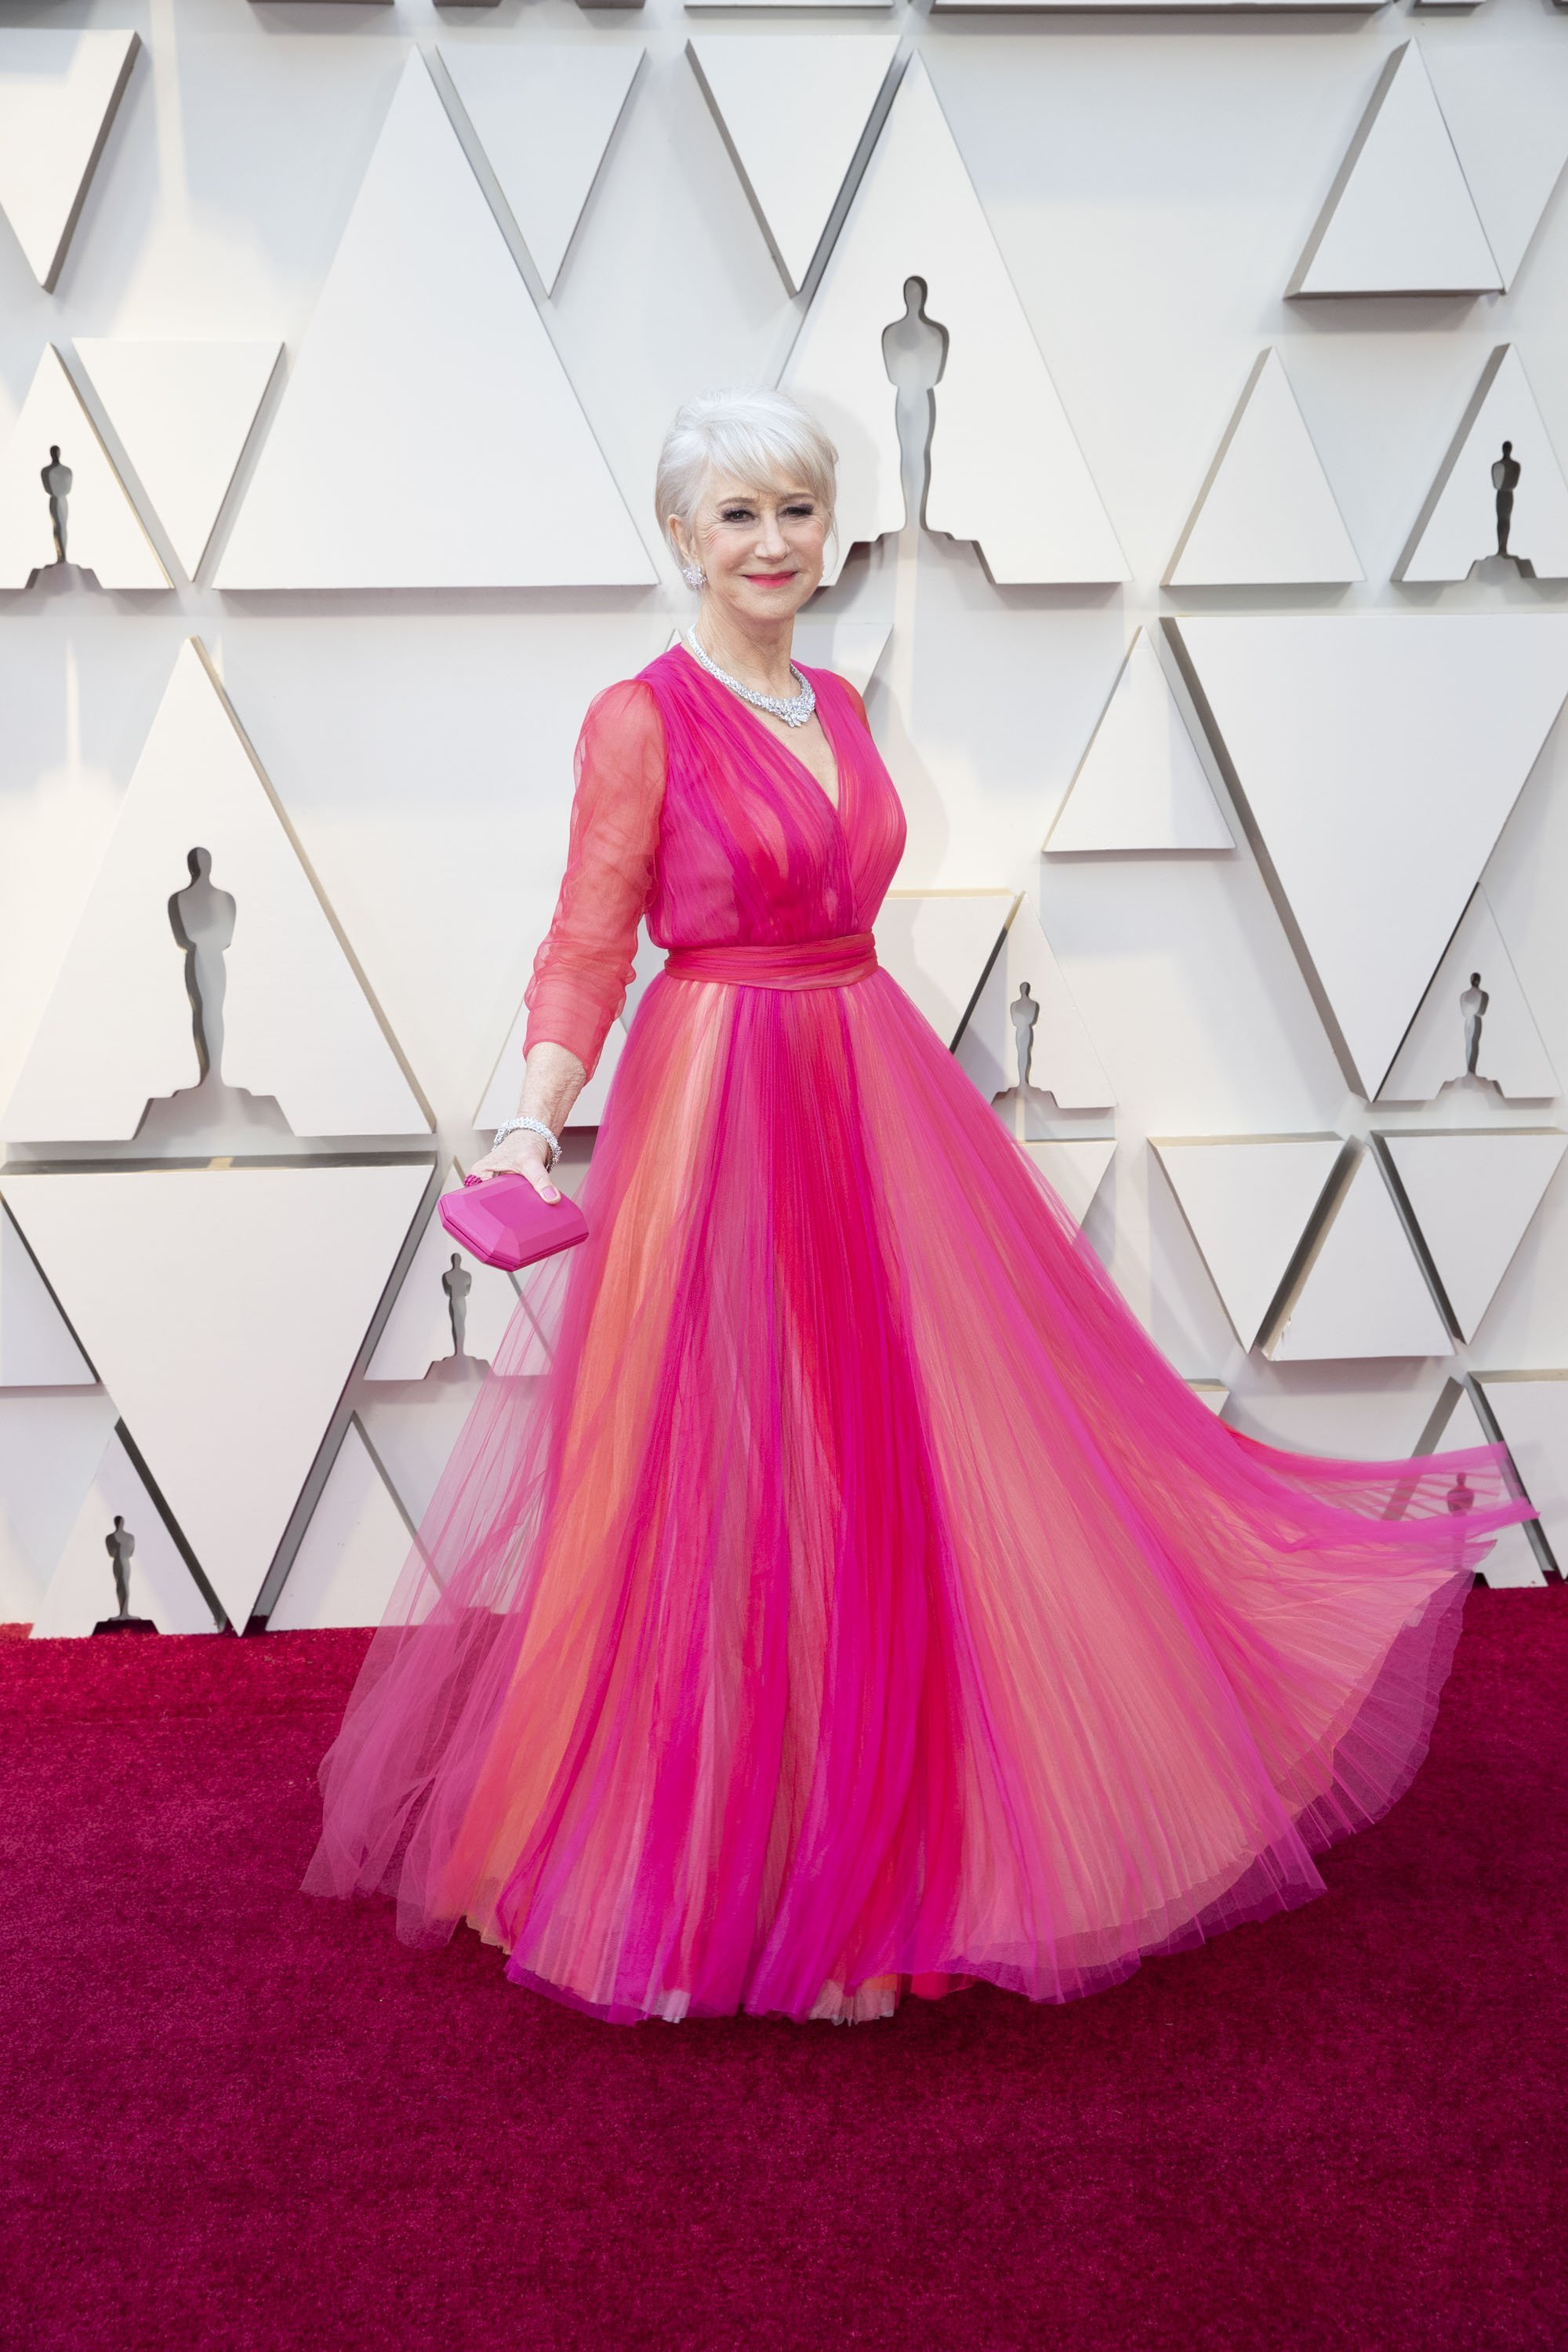 Helen Mirren: Red Carpet from the The 91st Oscar broadcast on Sunday, Feb. 24, 2019, at the Dolby Theatre.